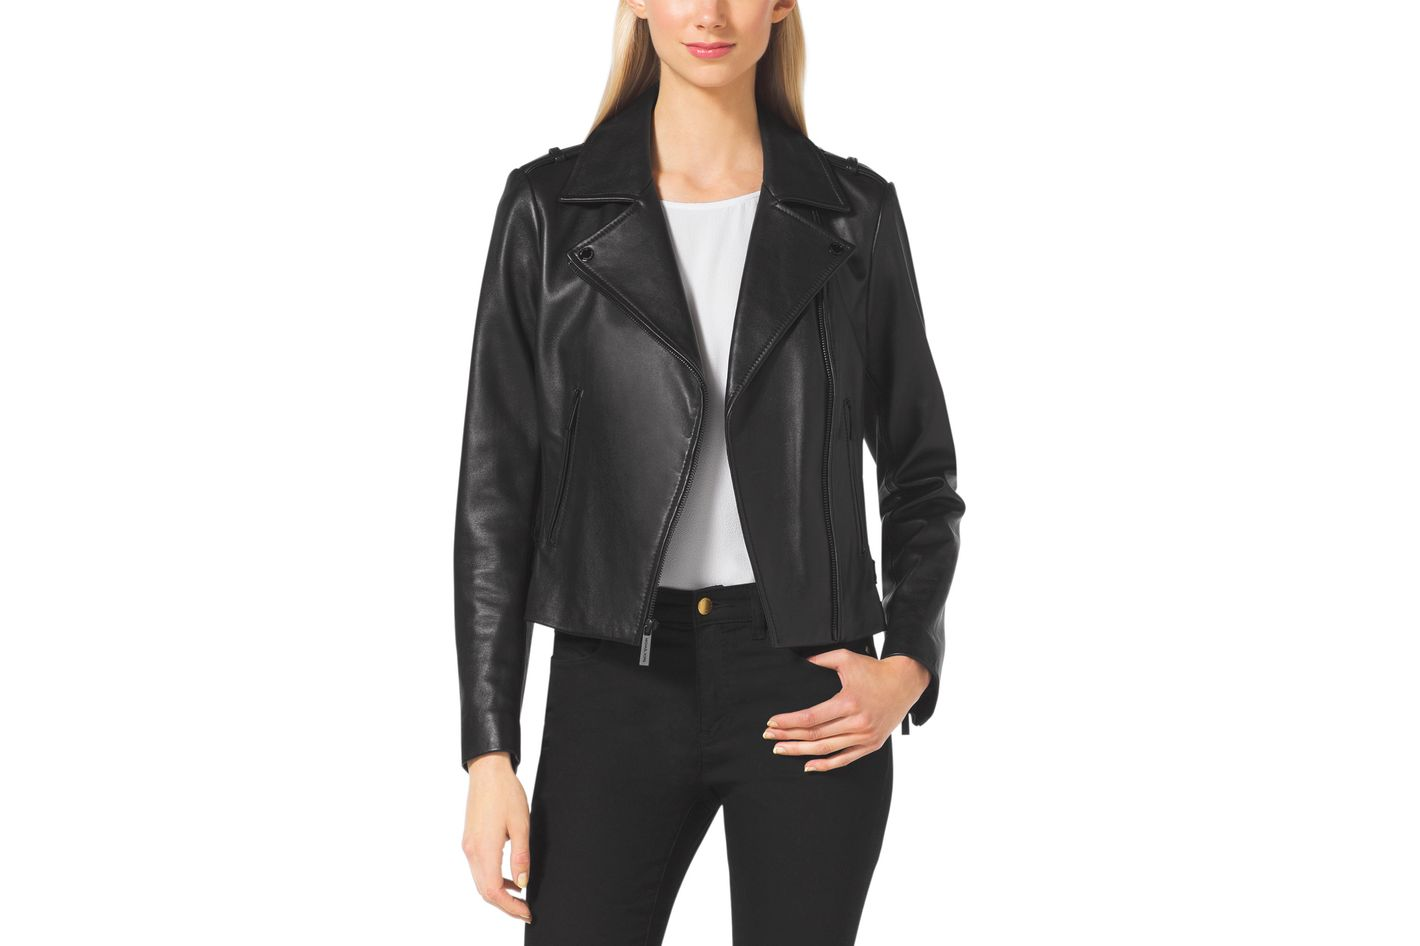 c69cc084ec0 How 5 Cool Women Wear Their Leather Jackets